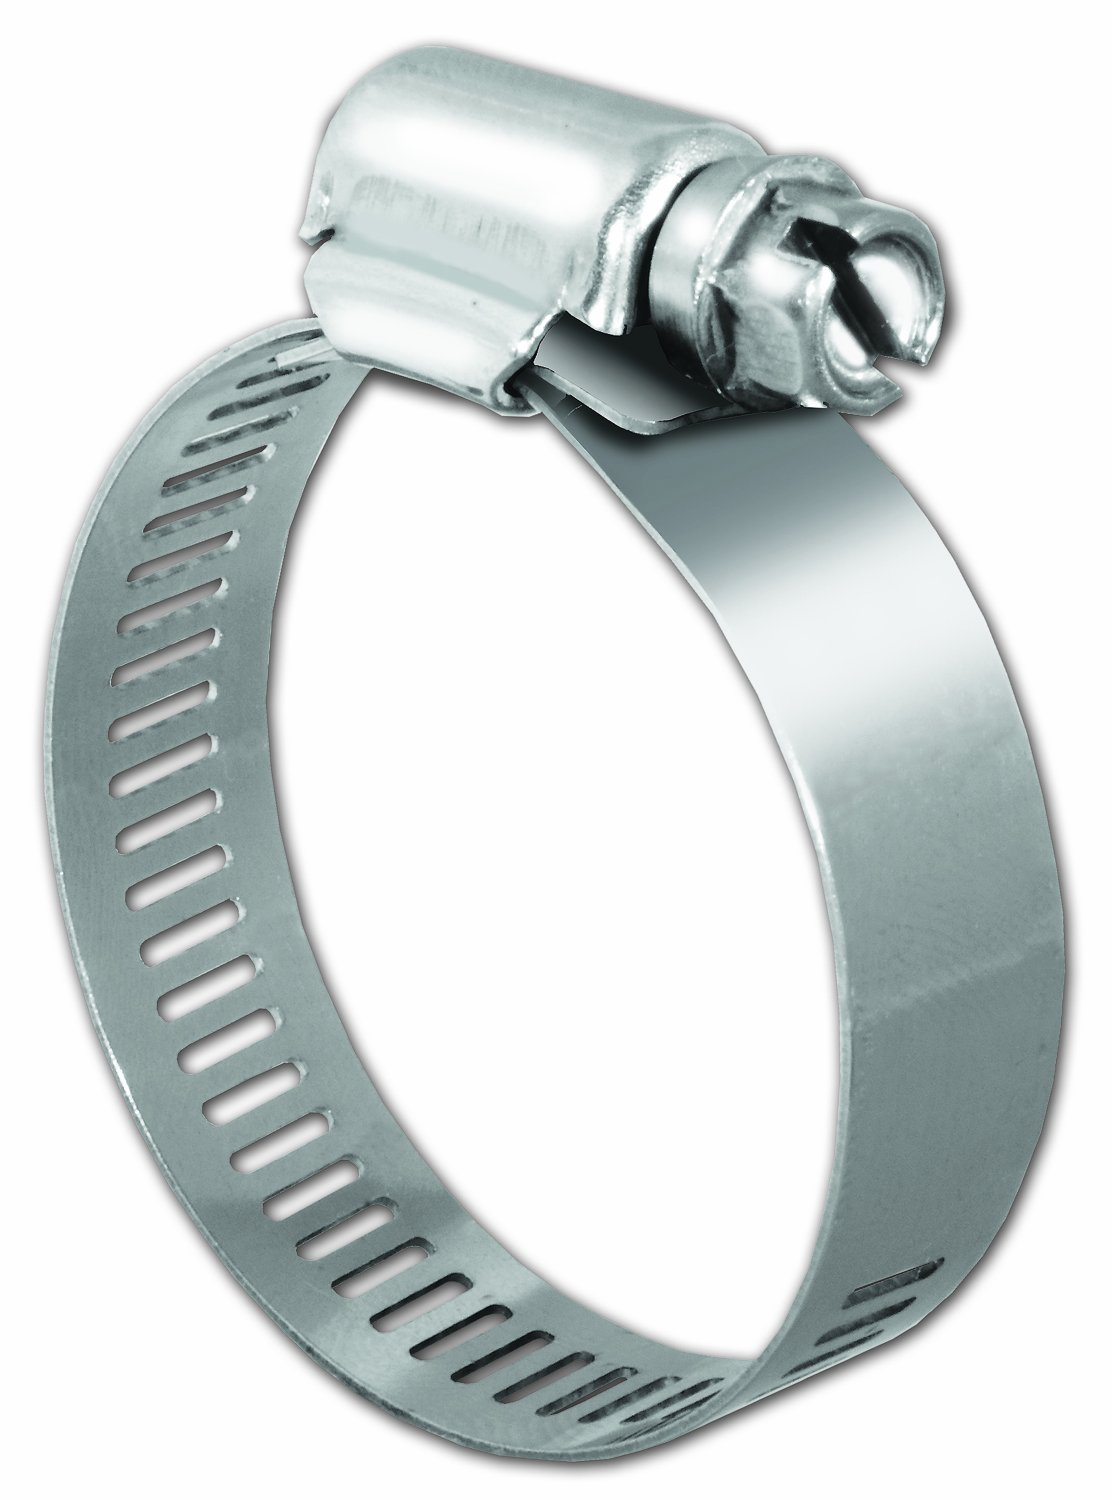 Pro Tie 33005-50 SAE Size 16 Range 13/16'' To 1-1/2'' Regular Duty All Stainless Hose Clamp, 50 Pack,